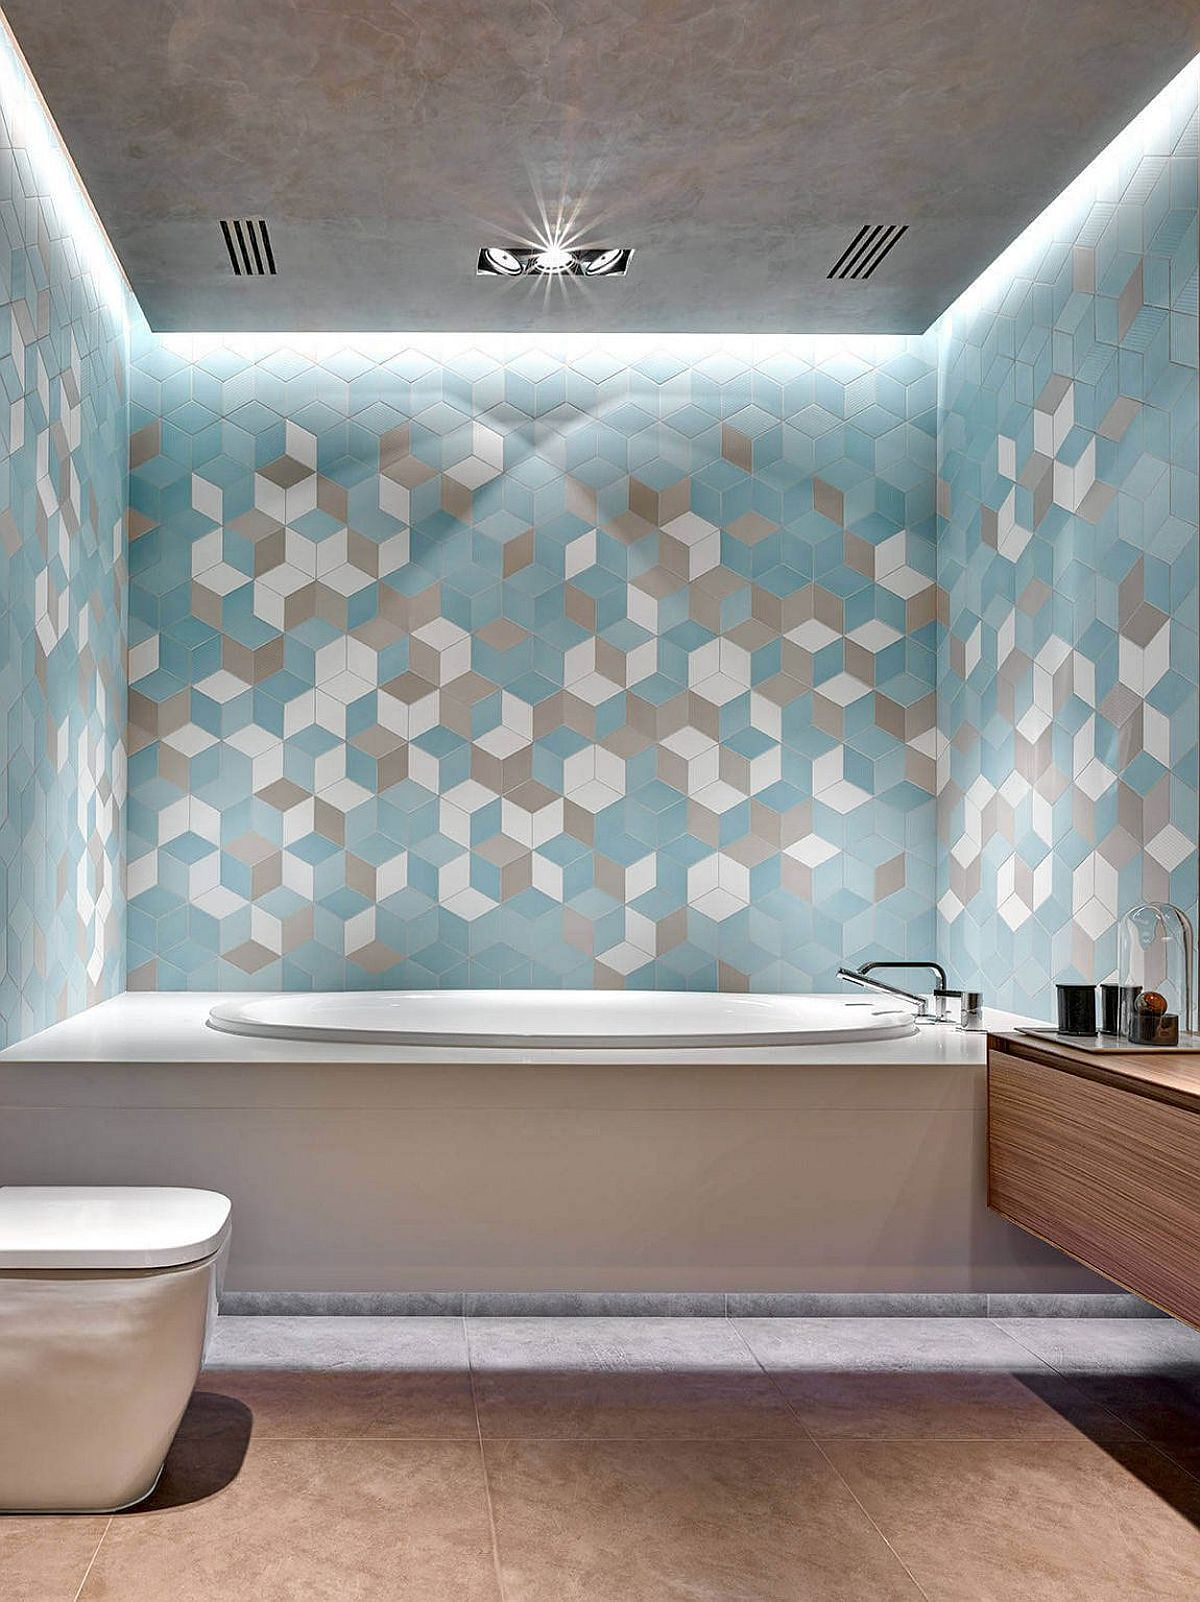 Colorful geo tiles create a fabulous backdrop in the contemporary bathroom